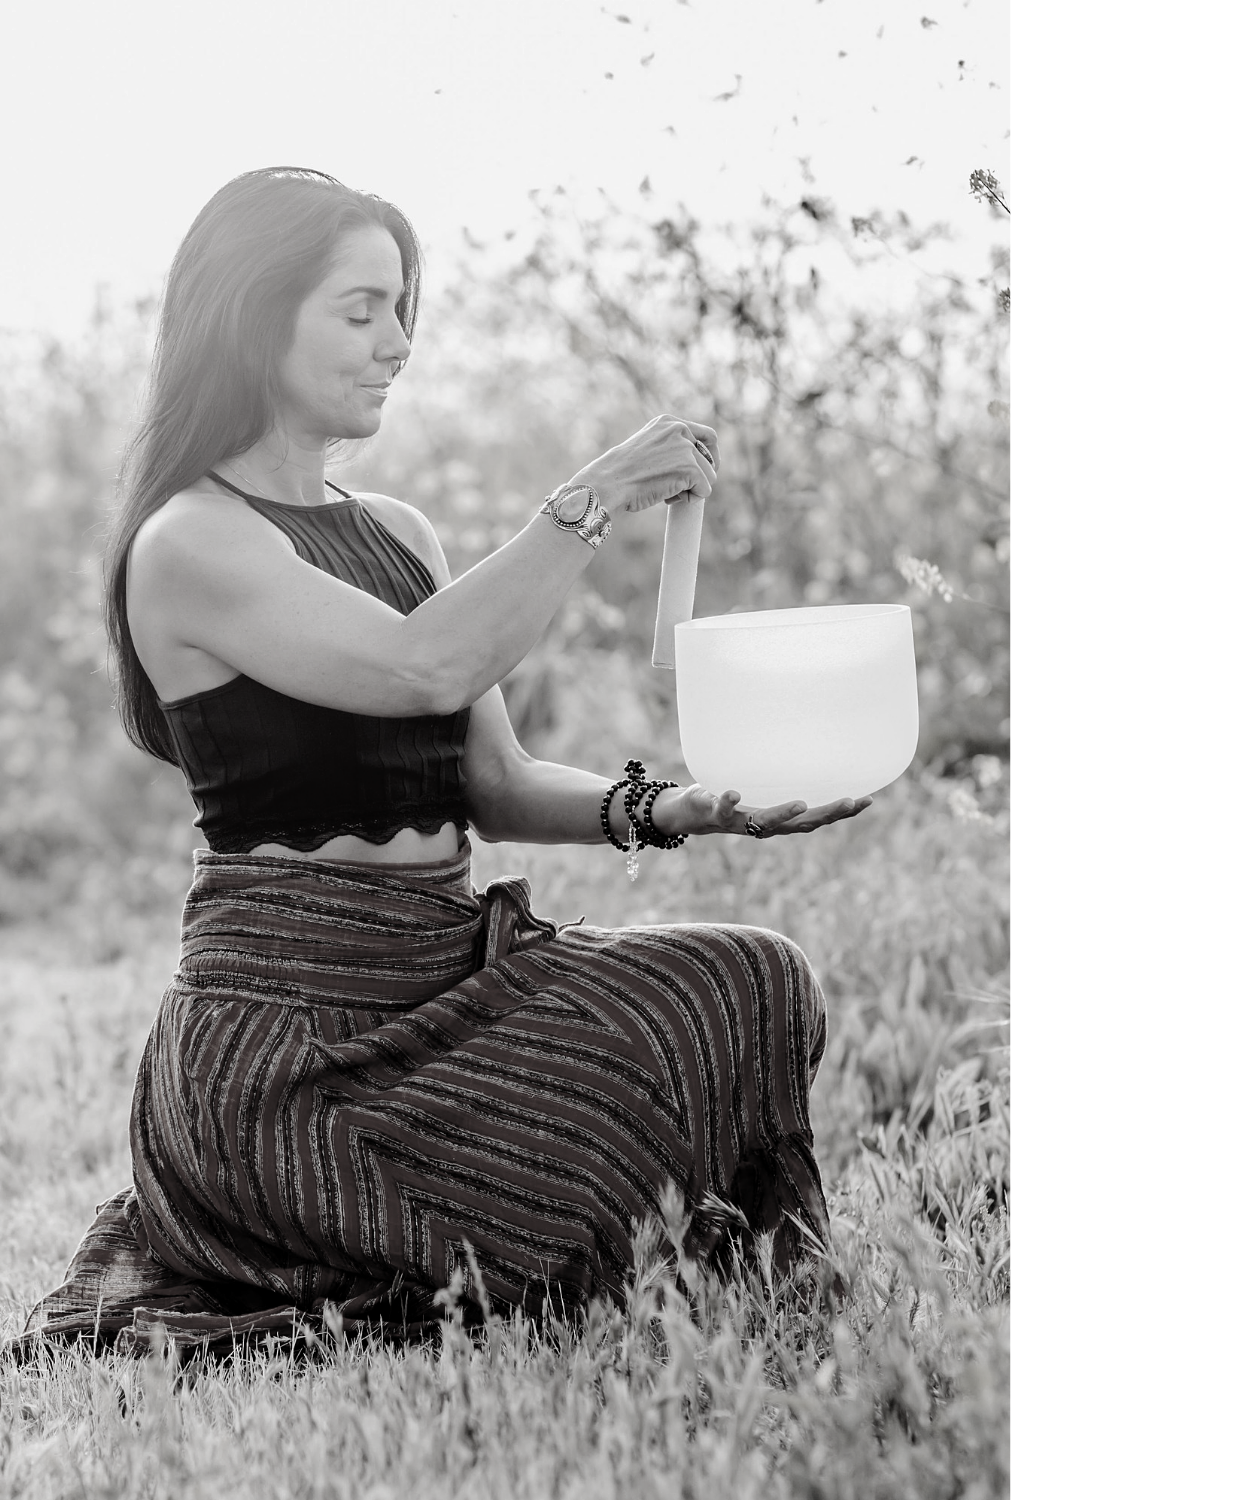 - Malas In Bloom founder Tammy Fodrey was named 'the guru to follow' by San Diego's Modern Luxury magazine in 2019. She is a mother, teacher, certified intuitive coach and energy healer residing in San Diego, California.